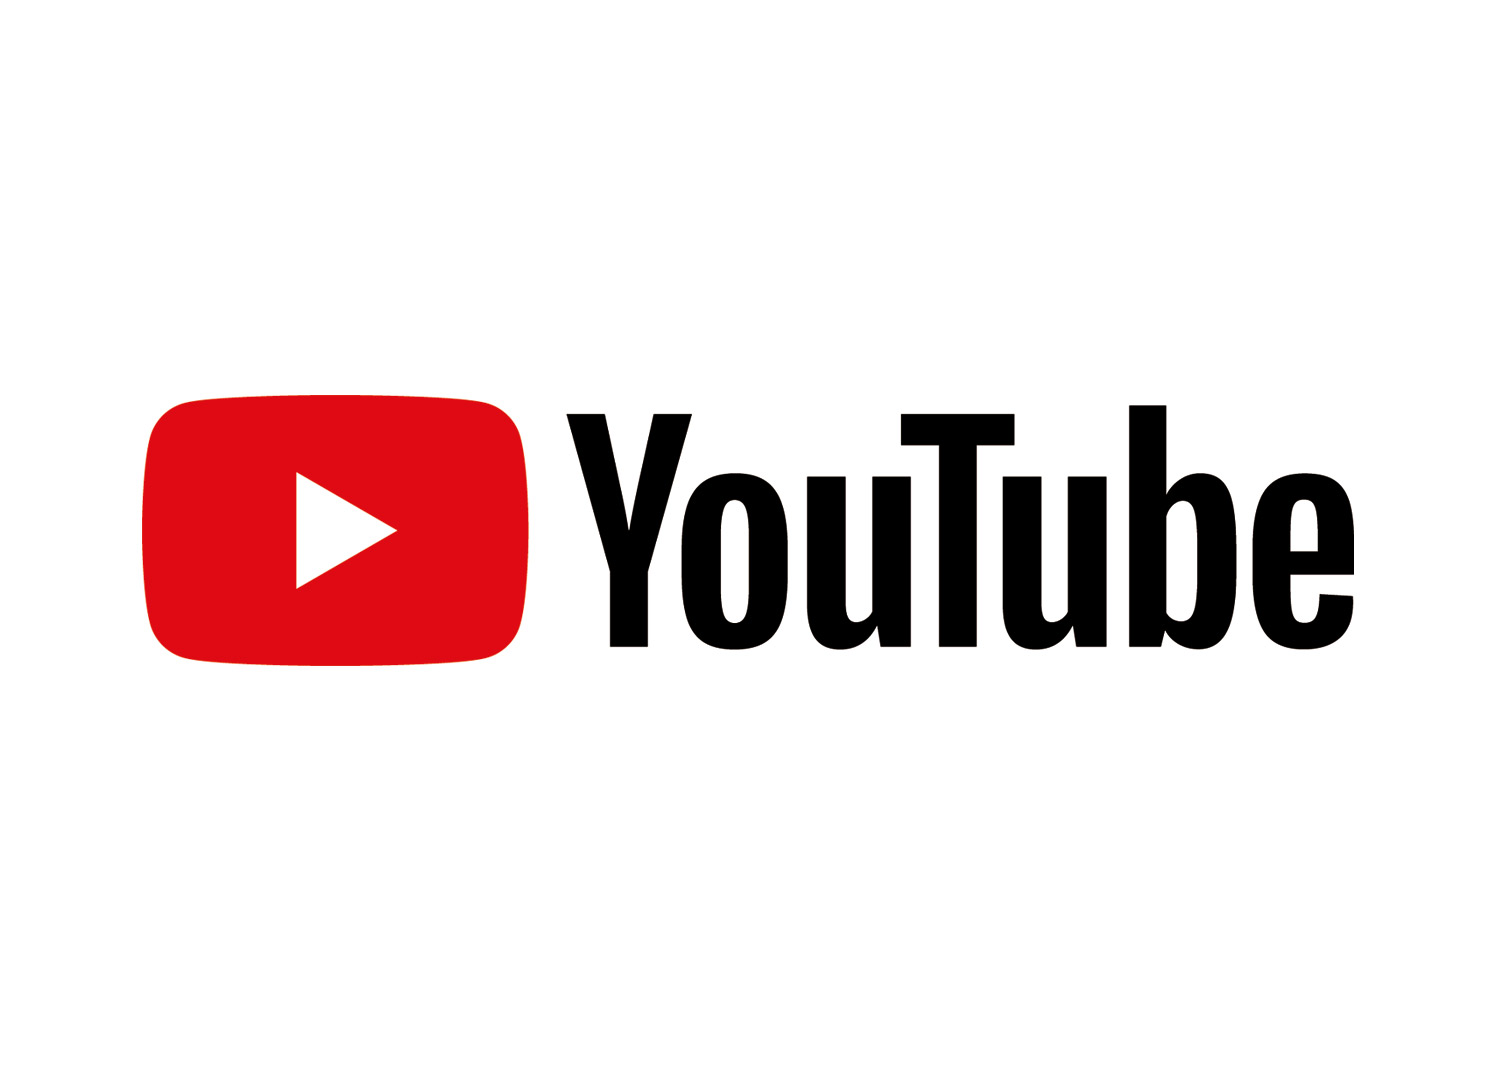 YouTube Logo (light)